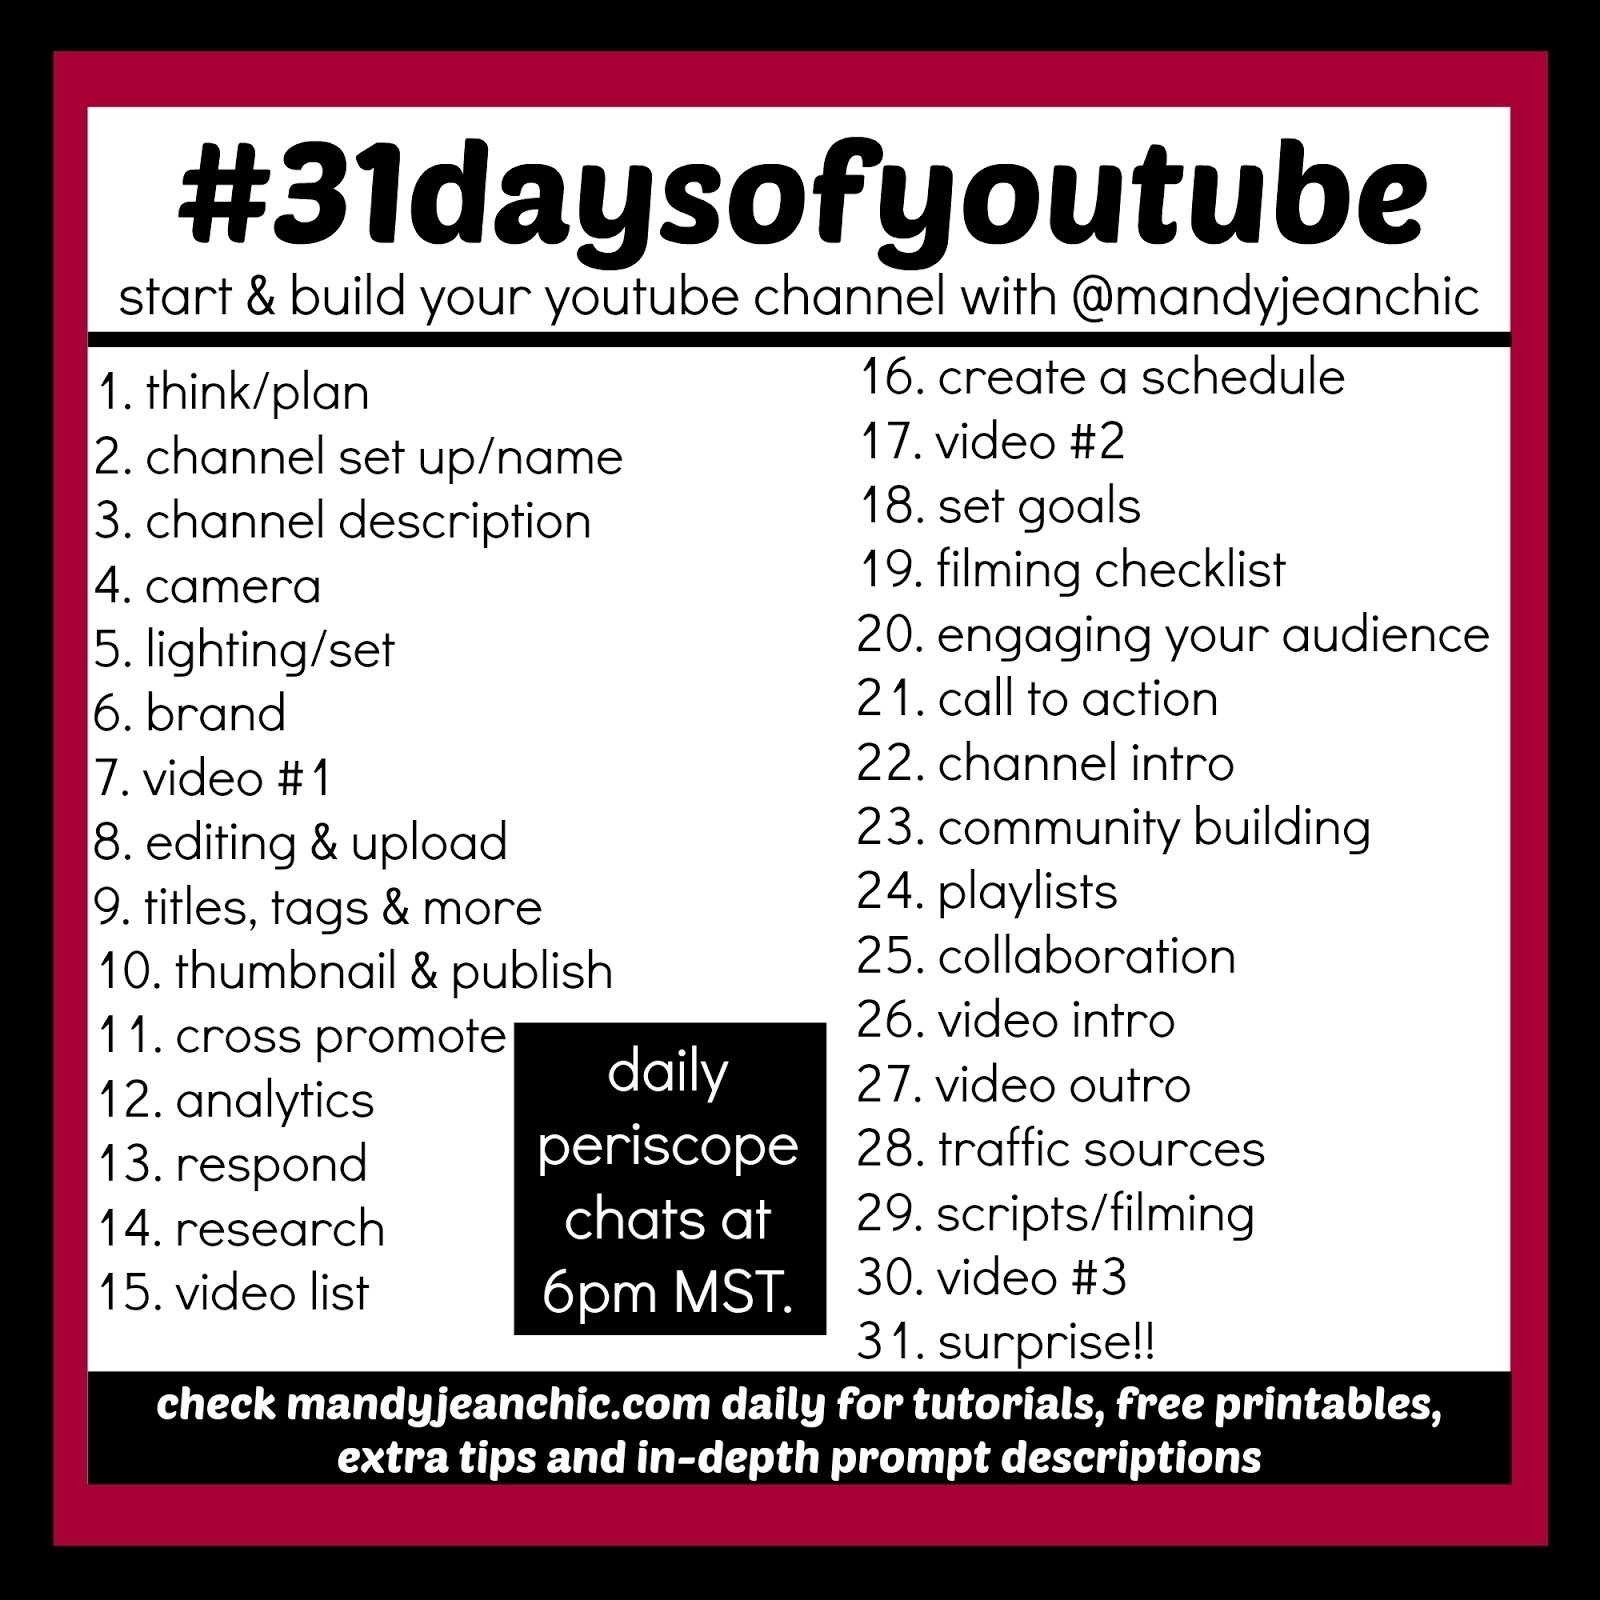 10 Wonderful Ideas For A Youtube Video mandy jean chic 31daysofyoutube day 1 think plan organizing your 2 2020